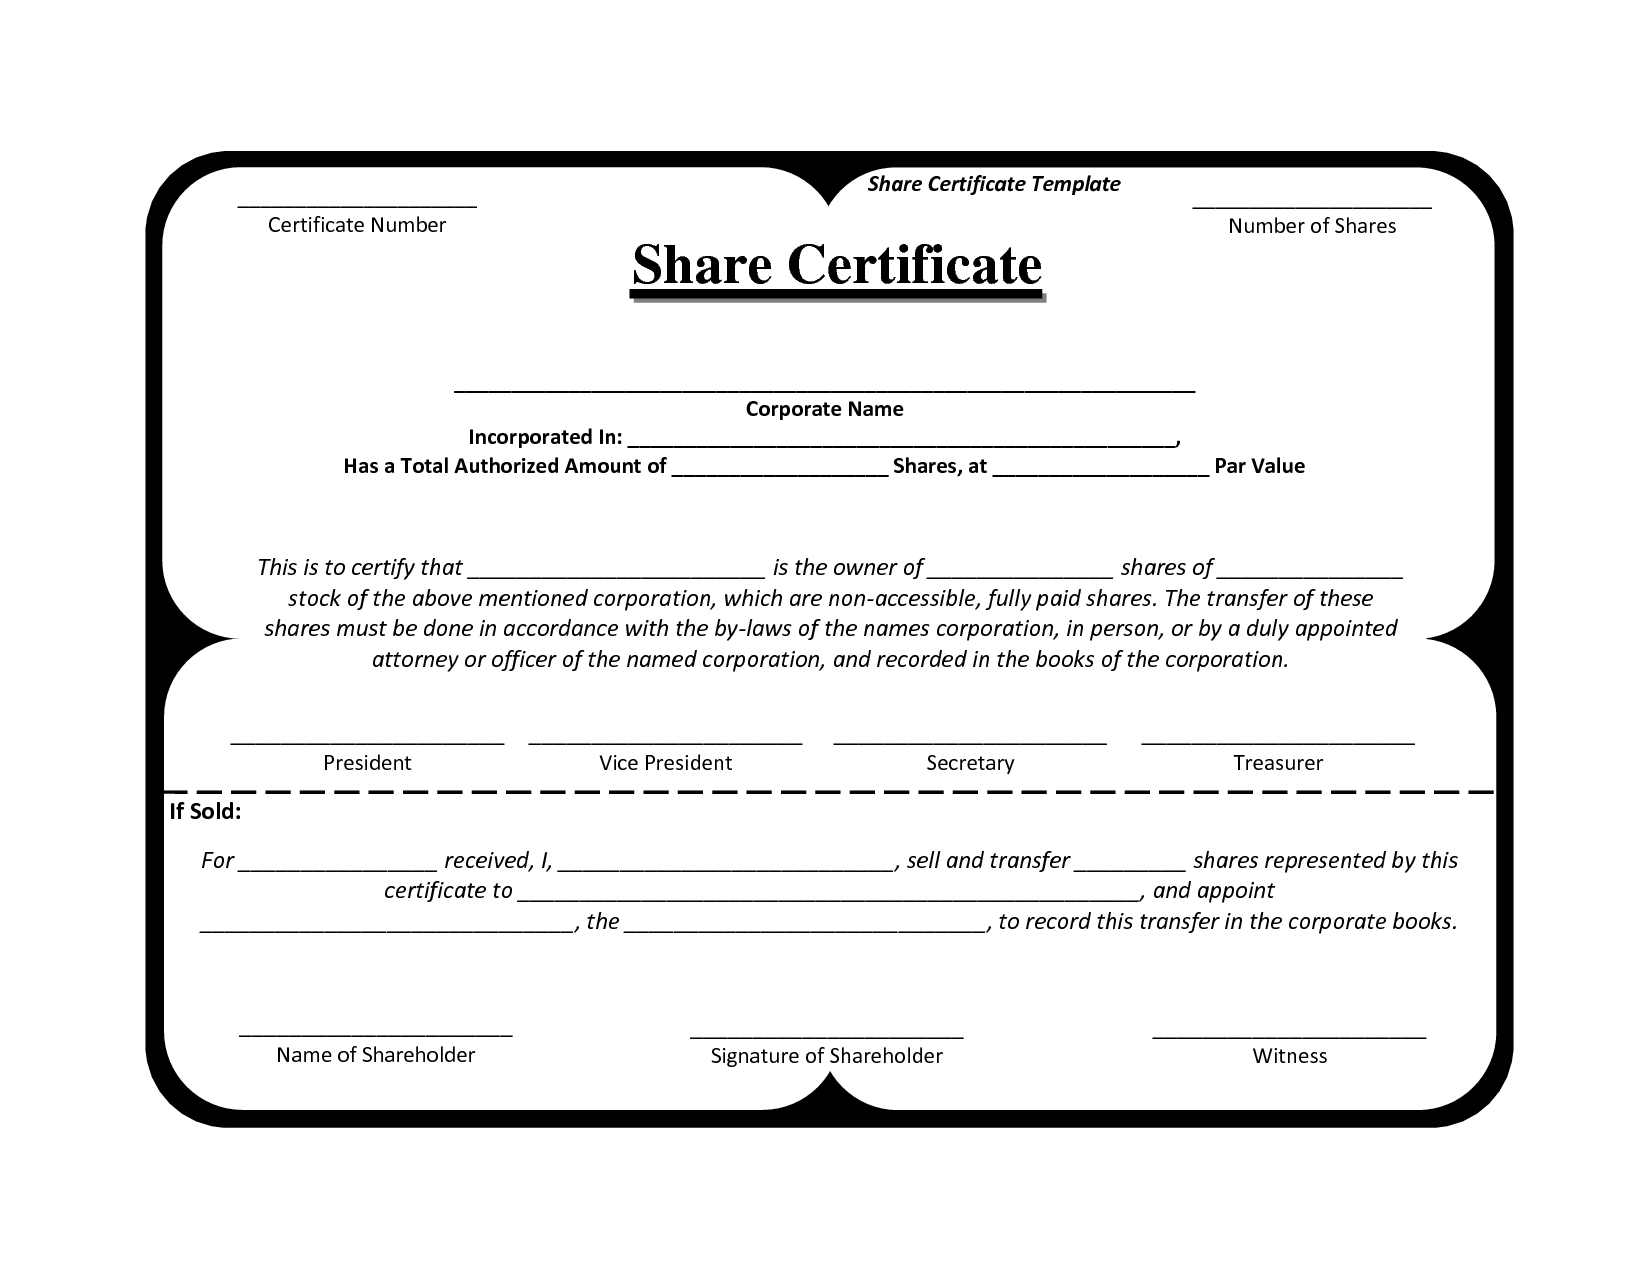 shareholding certificate template share certificate template south africa planner template